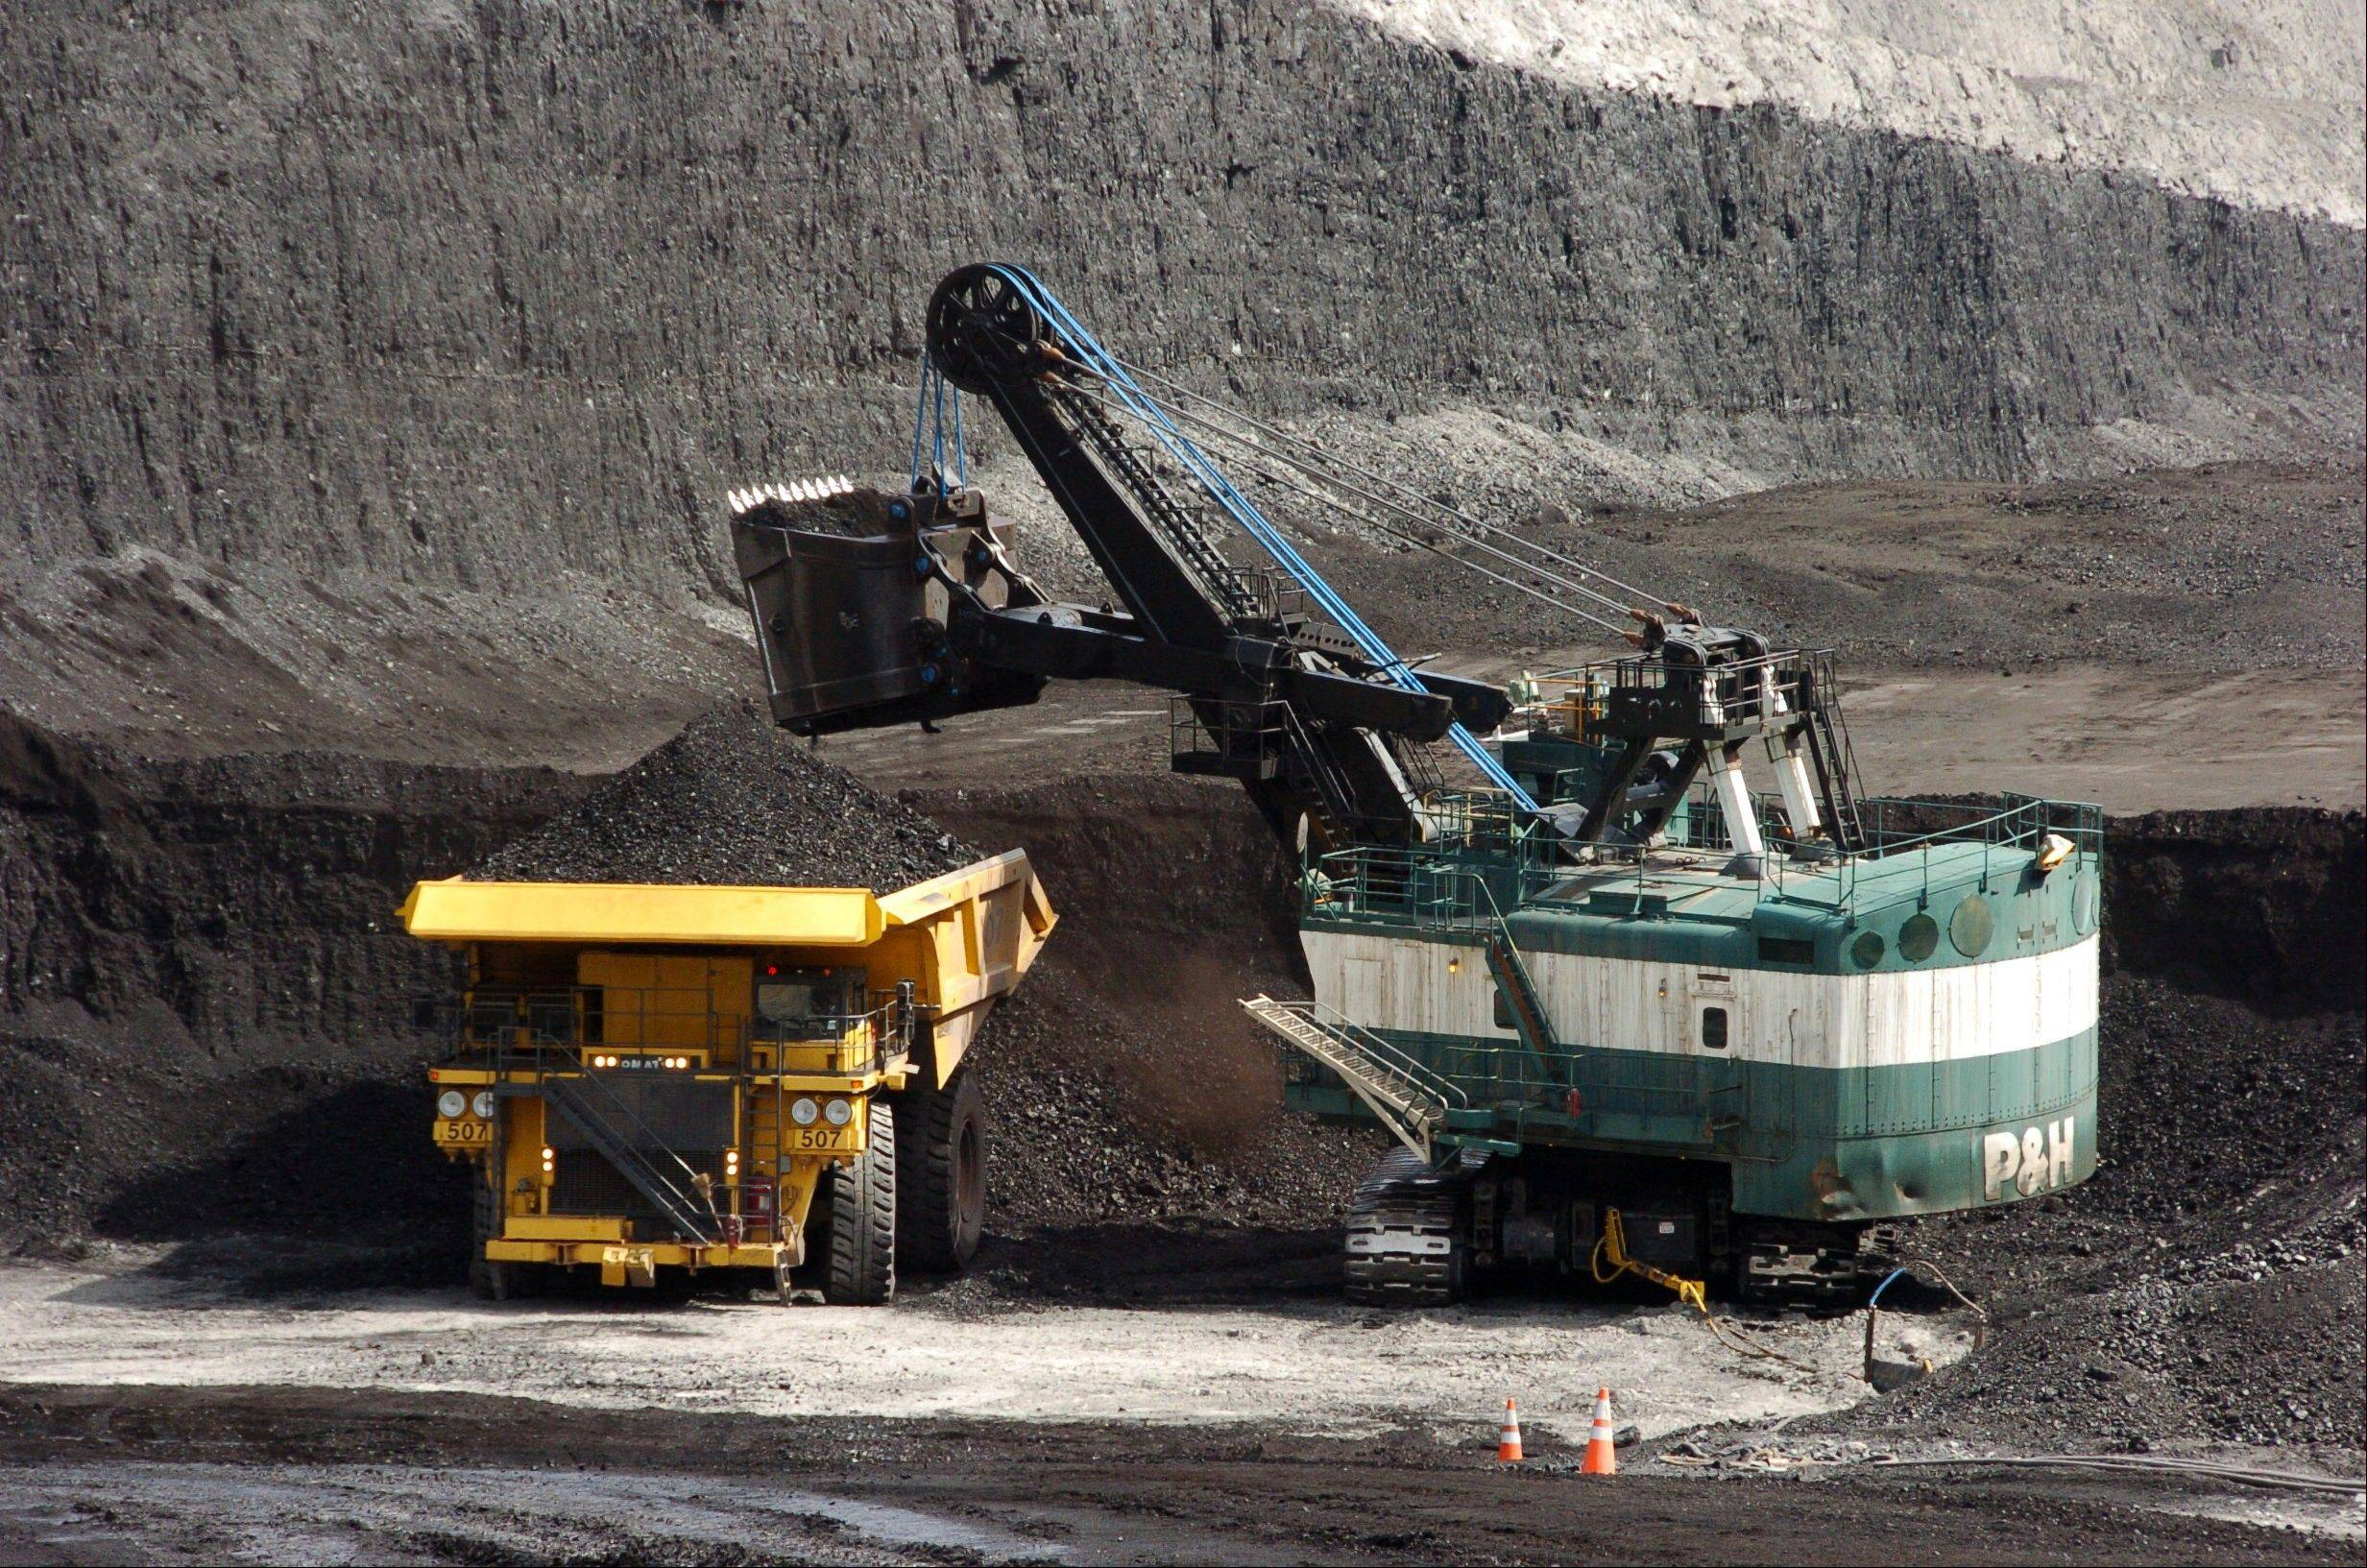 A mechanized shovel loads coal onto a haul truck at the Cloud Peak Energy's Spring Creek mine near Decker, Mont. The coal industry, which was hoping for a rebound in 2013 after struggling to stay competitive in recent years, is back on the defensive after President Barack Obama renewed calls for carbon dioxide reductions from new and existing power plants.